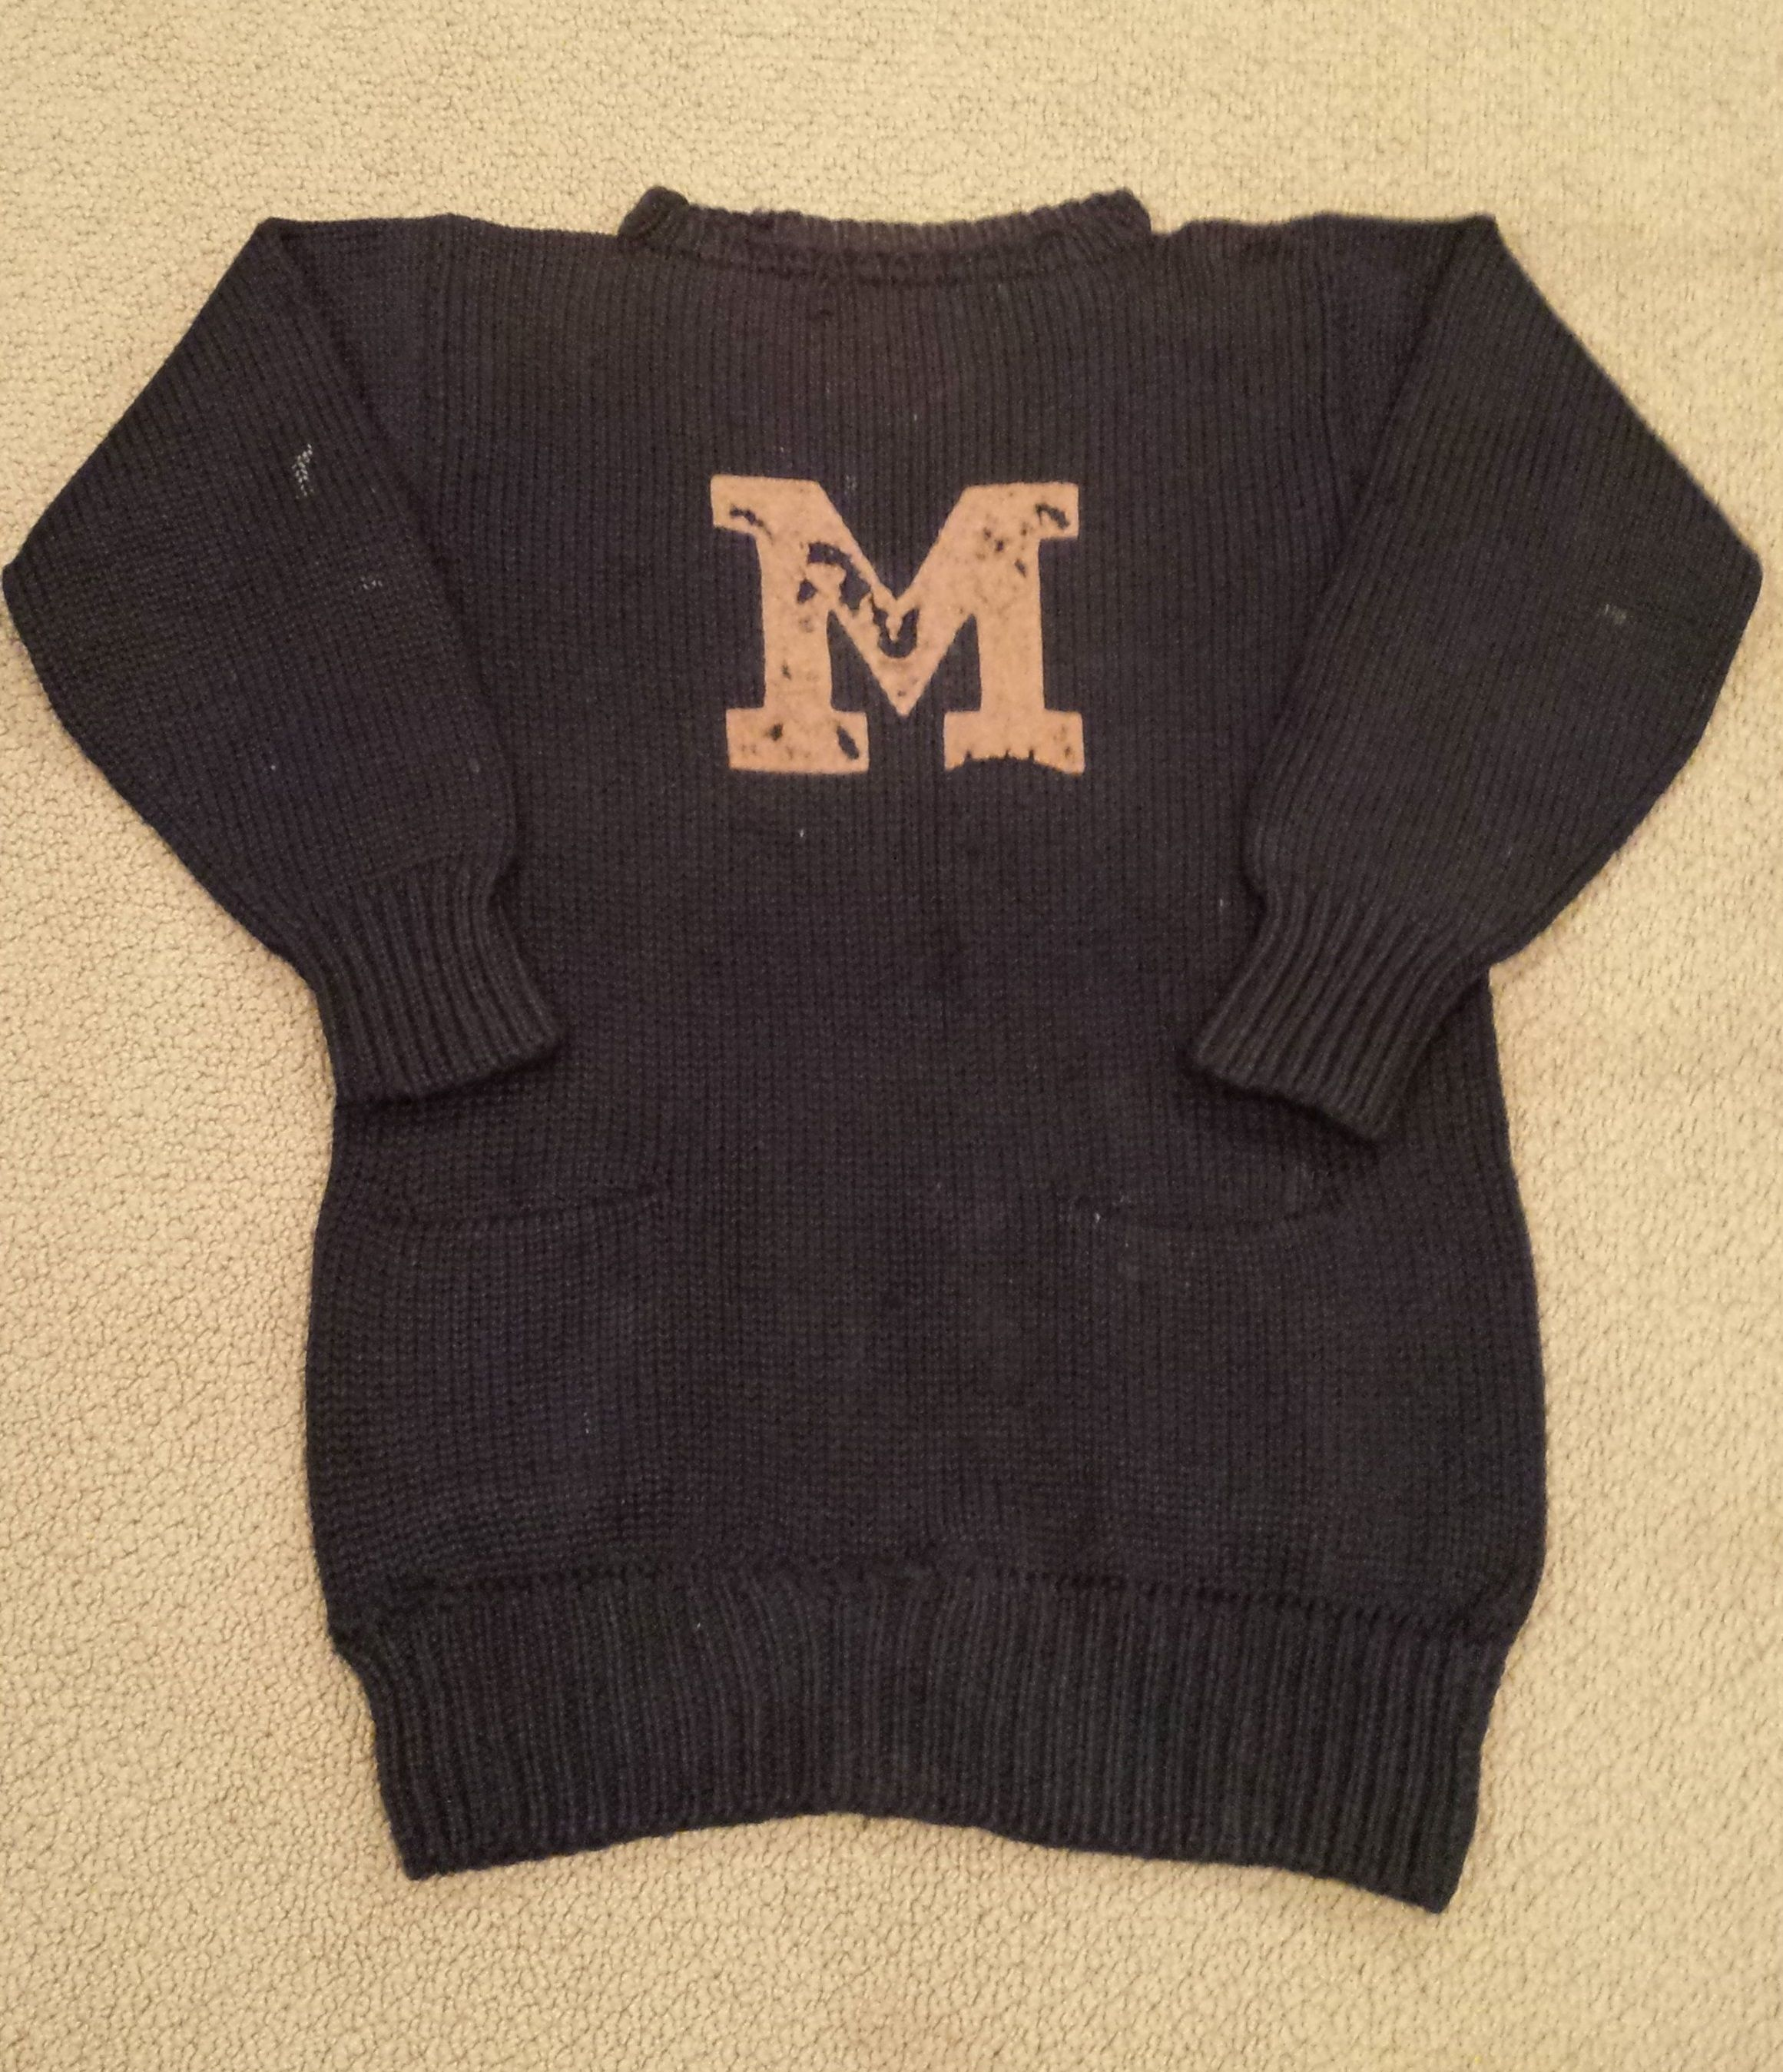 c 1910 Letterman Sweater Attributed to University of Michigan